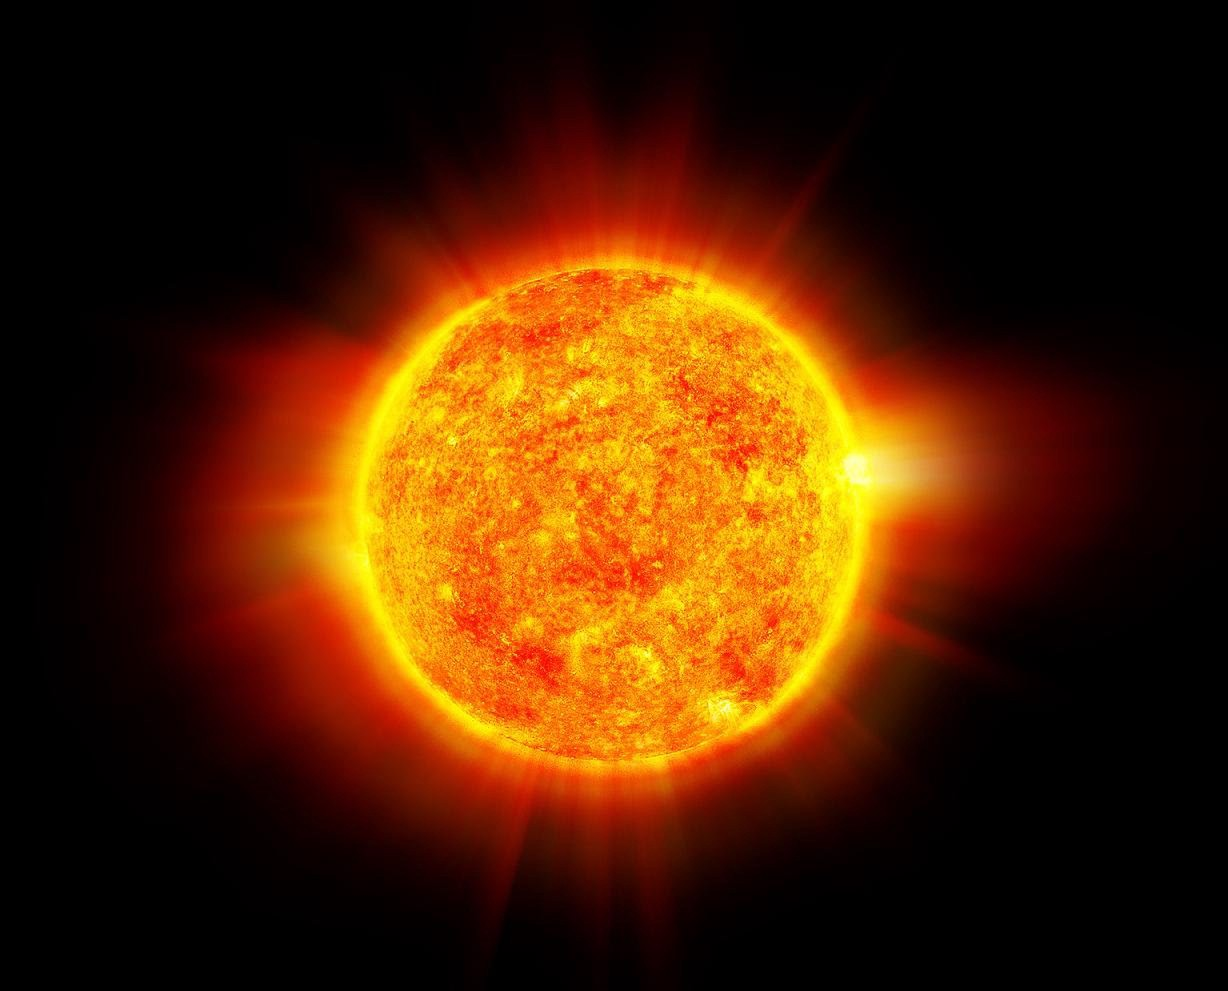 solar system with two suns - photo #23